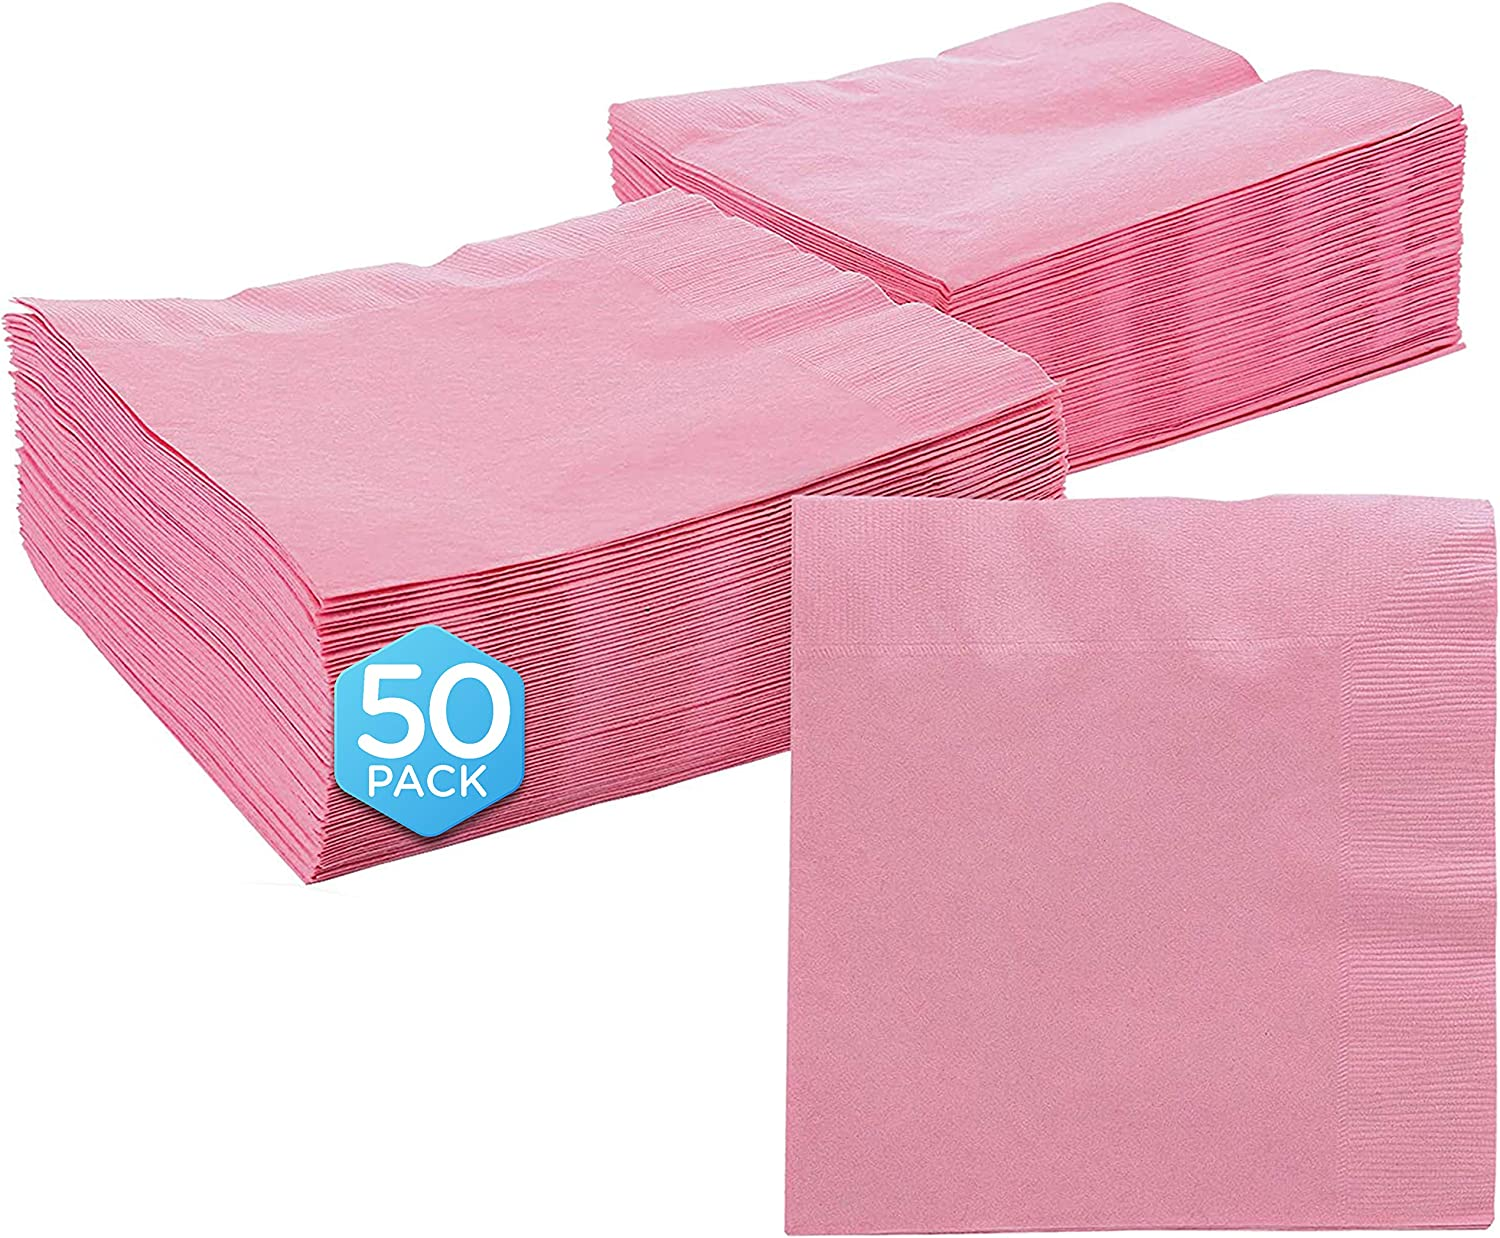 "Amcrate Big Party Pack 50 Count Pink Dinner Napkins Tableware- Ideal for Wedding, Party, Birthday, Dinner, Lunch, Cocktails. (7"" x 7"")"